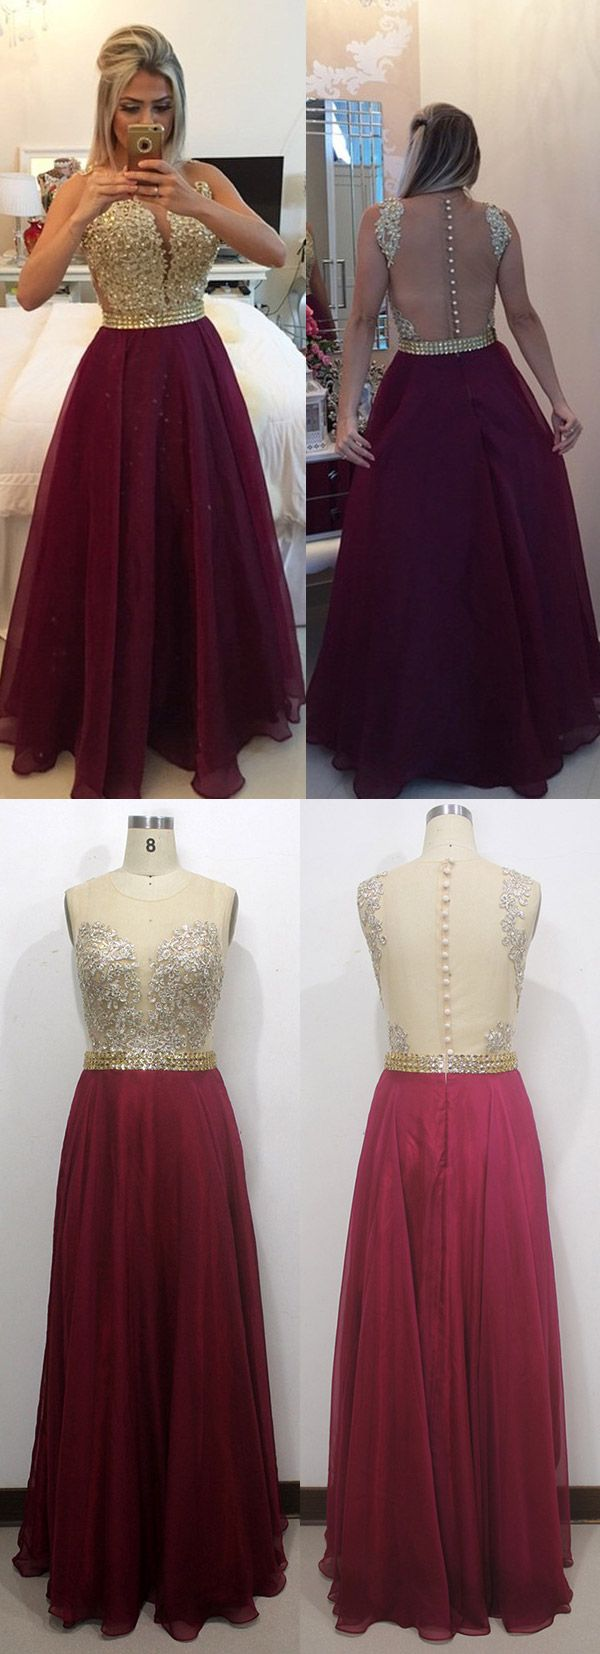 Burgundy Prom Dresses Long, Sexy Party Dresses Chiffon, Lace Formal Dresses 2018 Scoop Neck, A-line Evening Dresses Modest